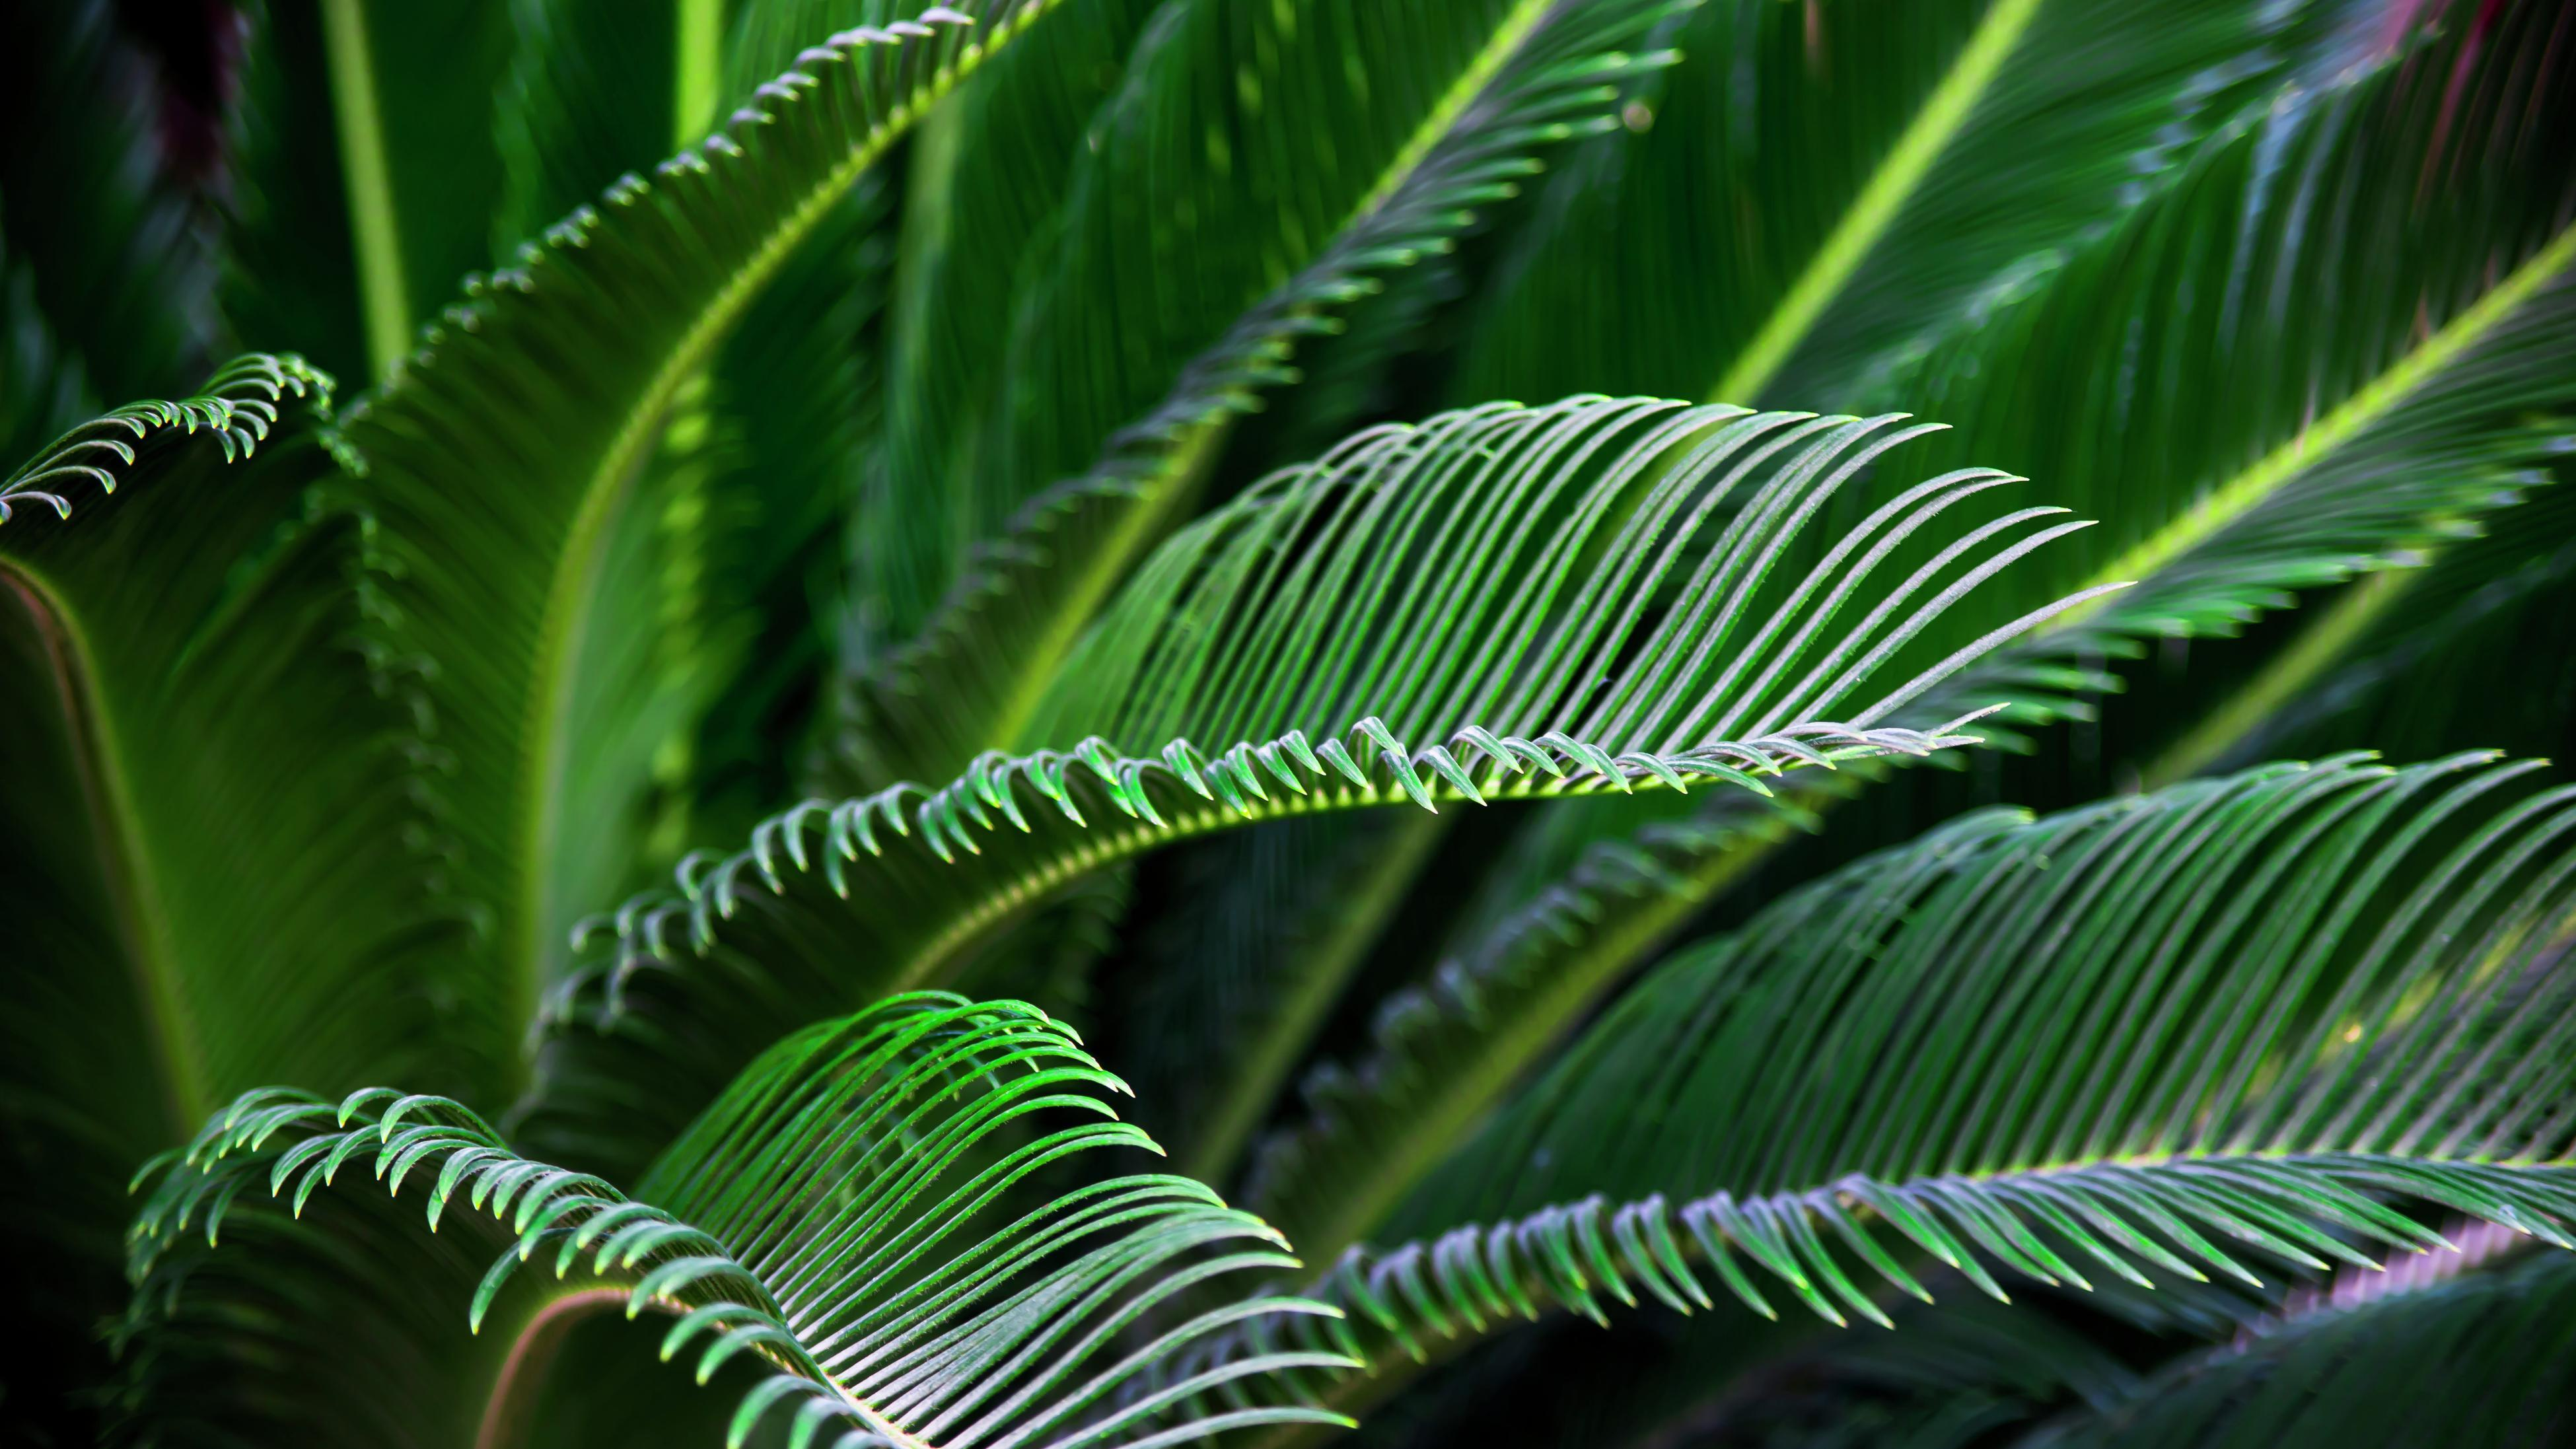 Green cycad fronds in a garden